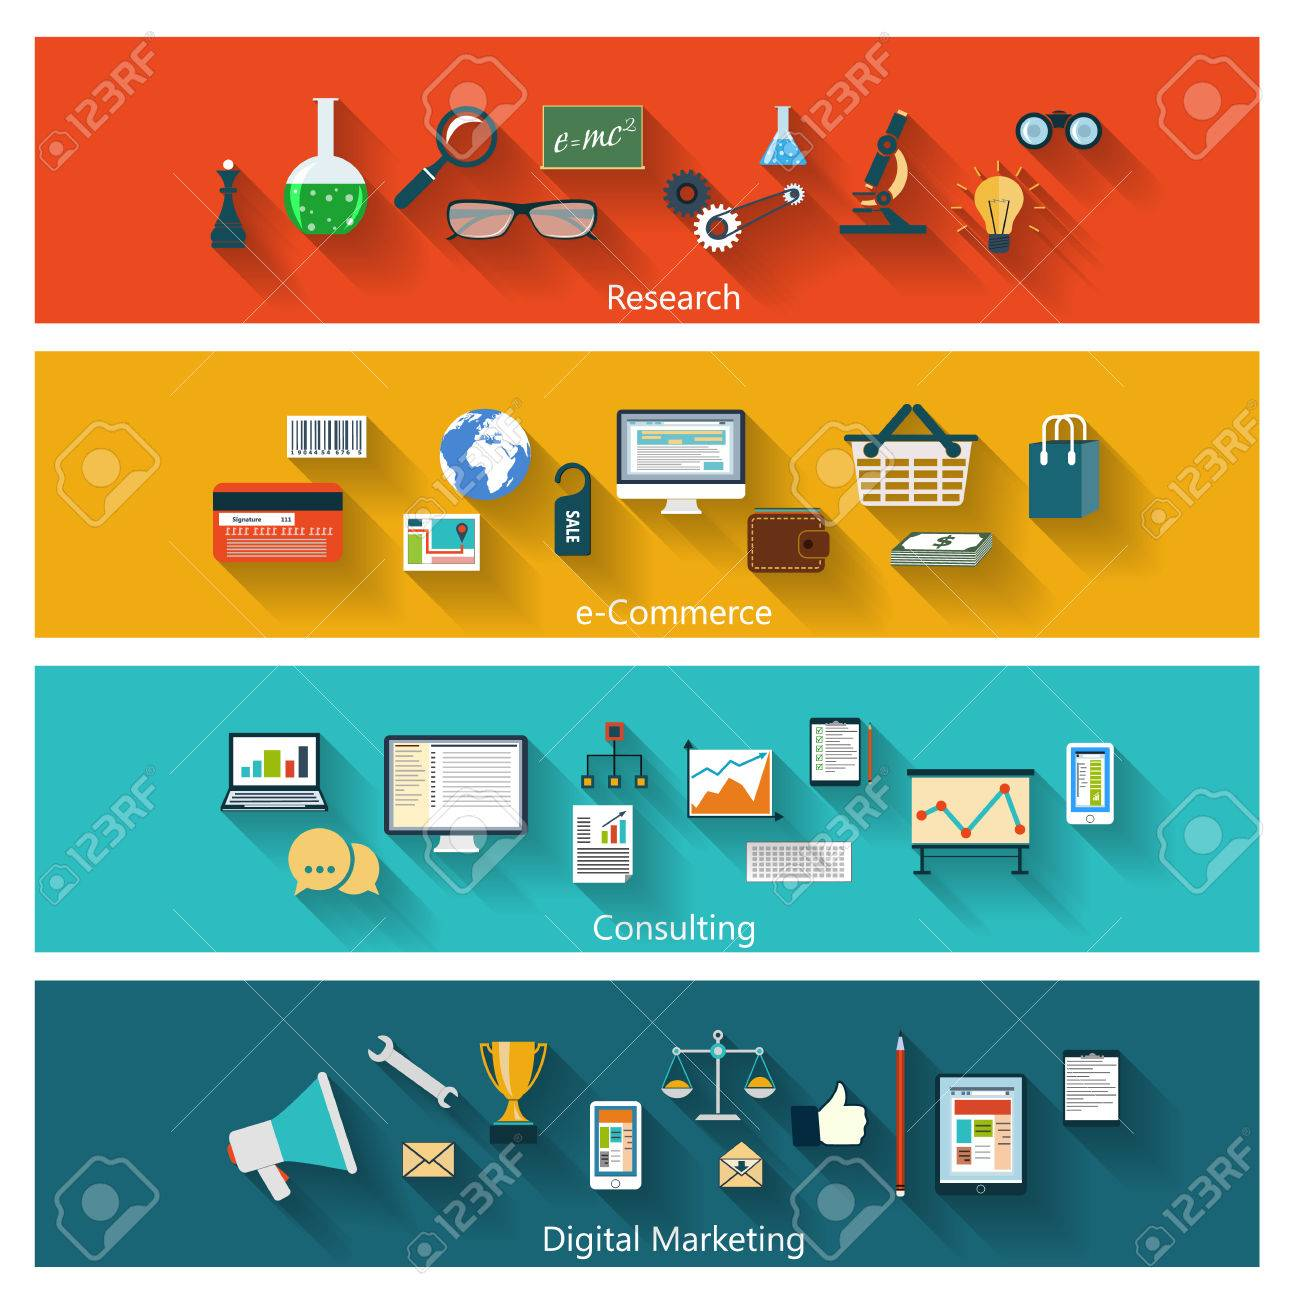 Set of modern concept banners in flat design with long shadows and trendy colors for web, book covers, corporate brochures, logos, mobile applications, business, social networks etc. Vector eps10 illustration - 29726051